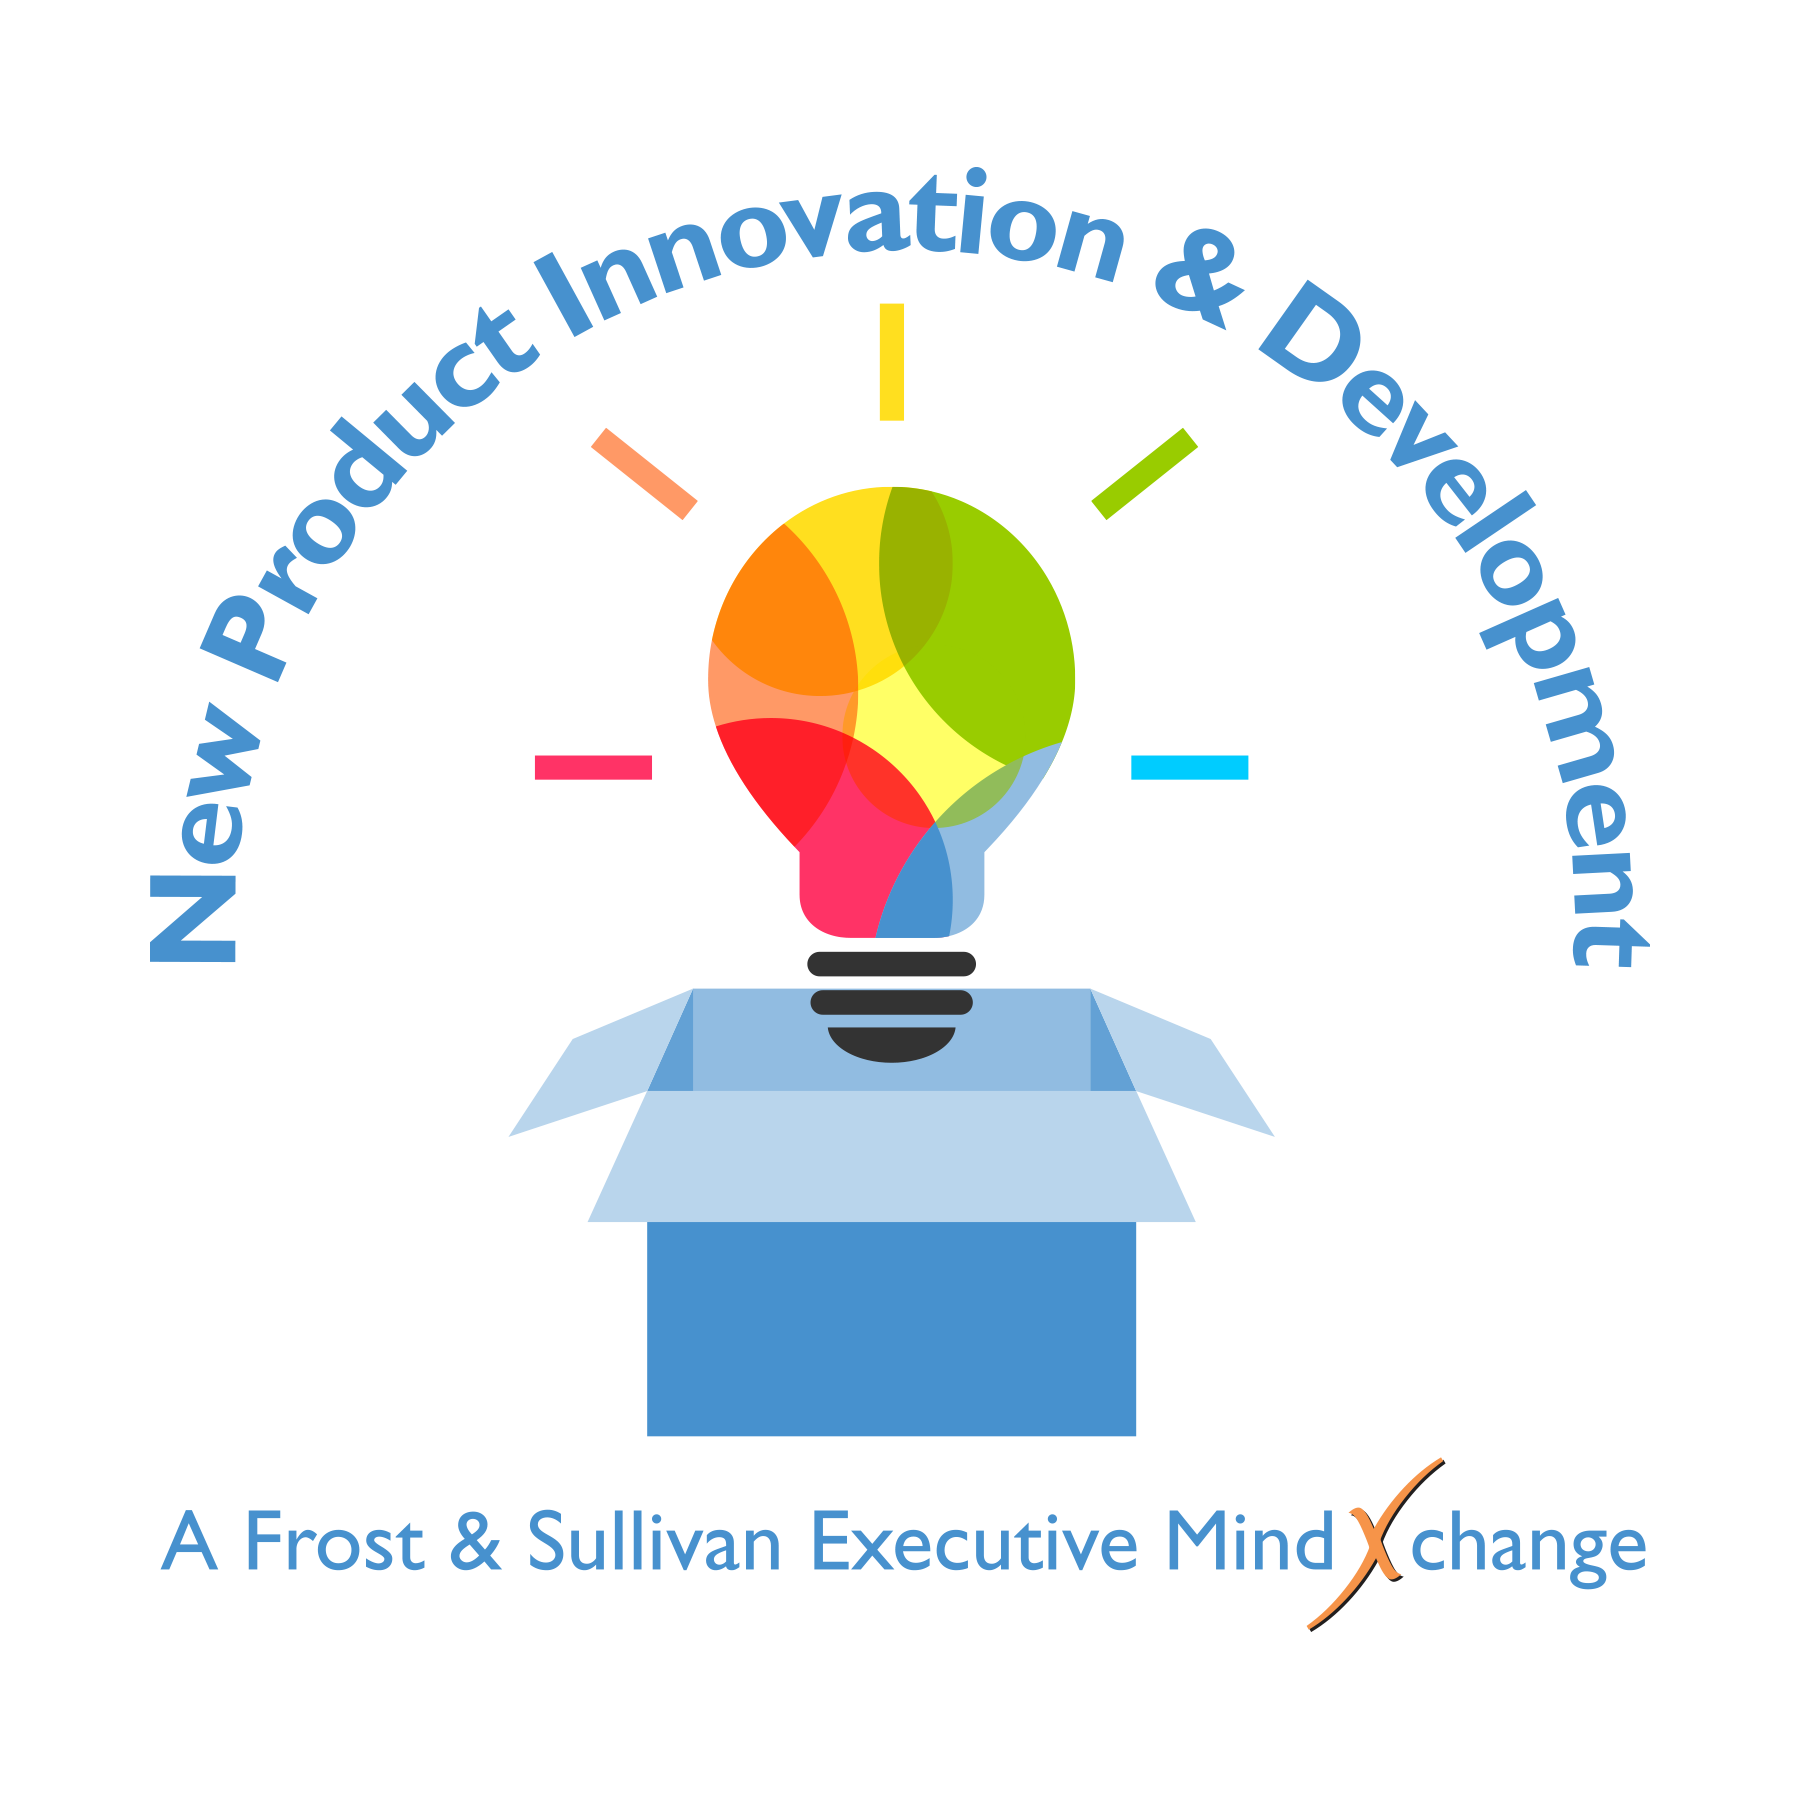 Product Innovation Png - New Product Innovation & Development Event   March 22-24, 2021 ...